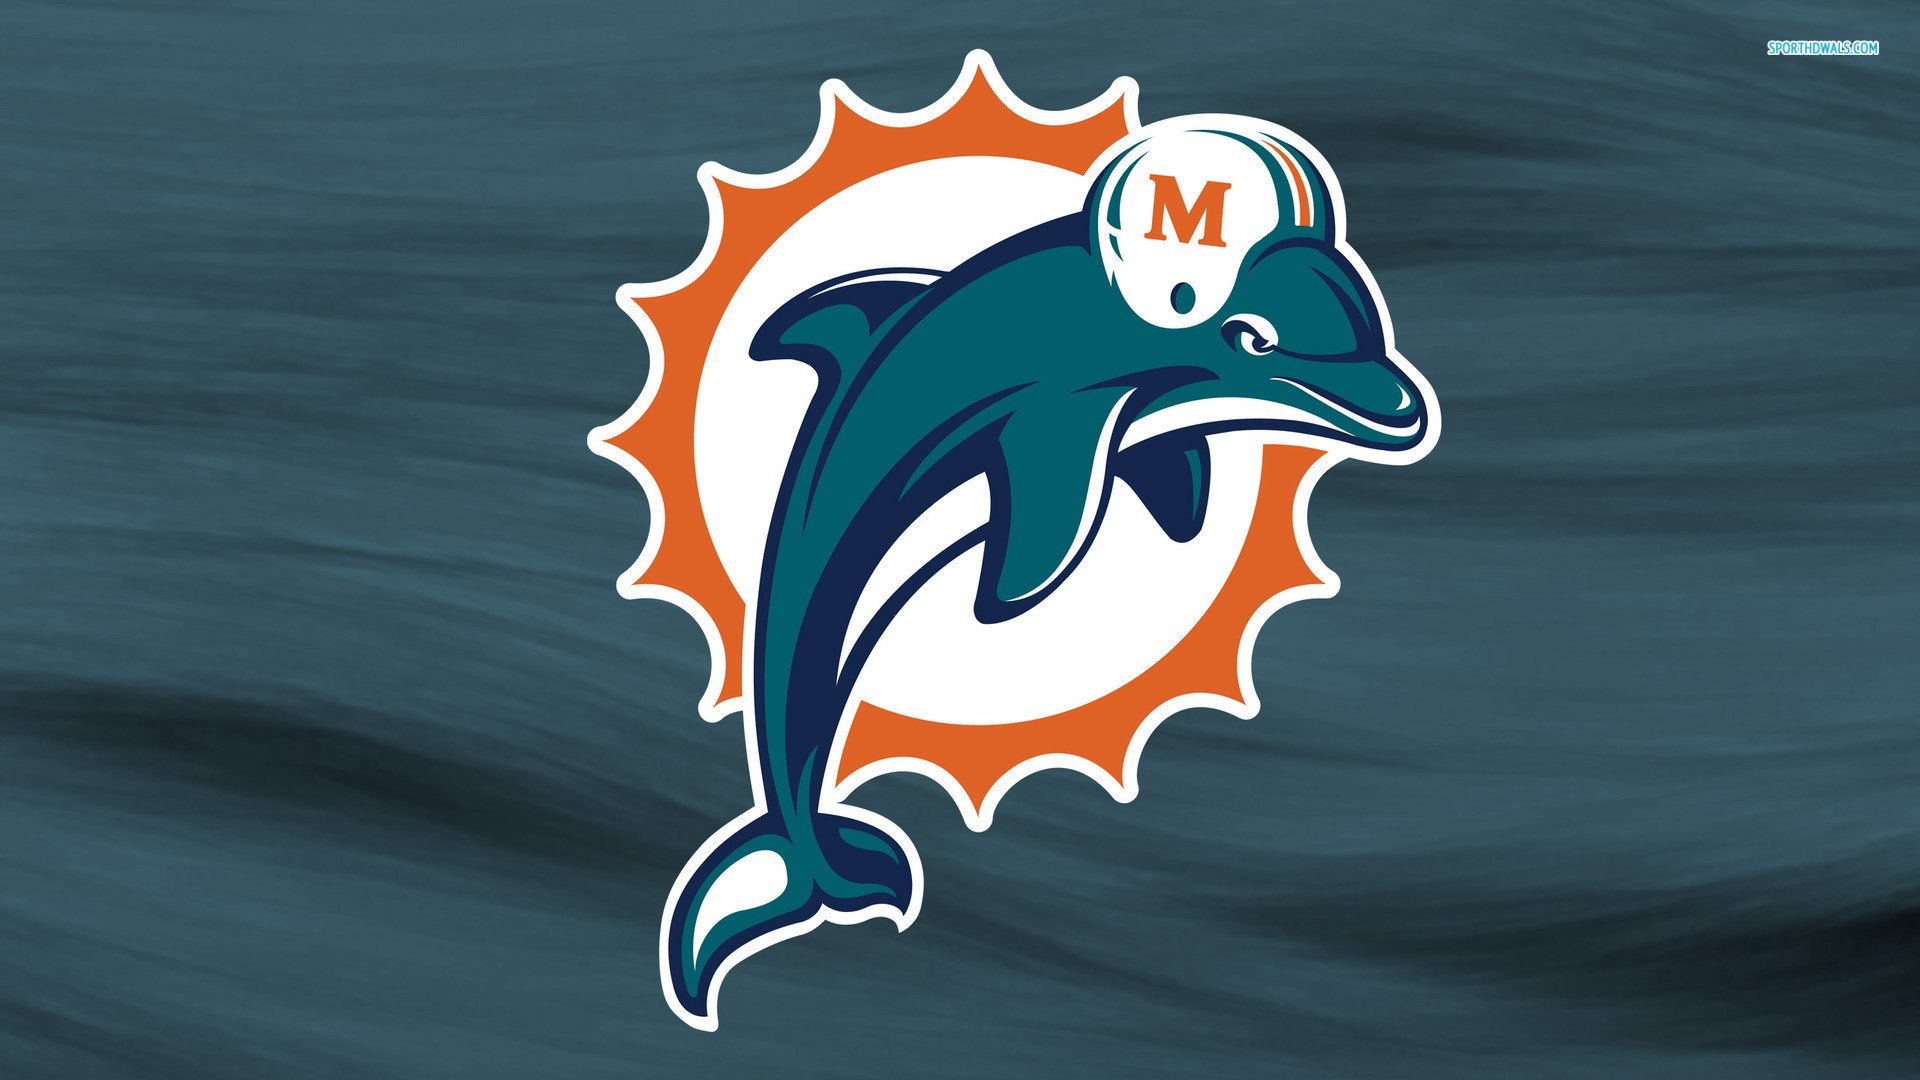 Miami Dolphins background image